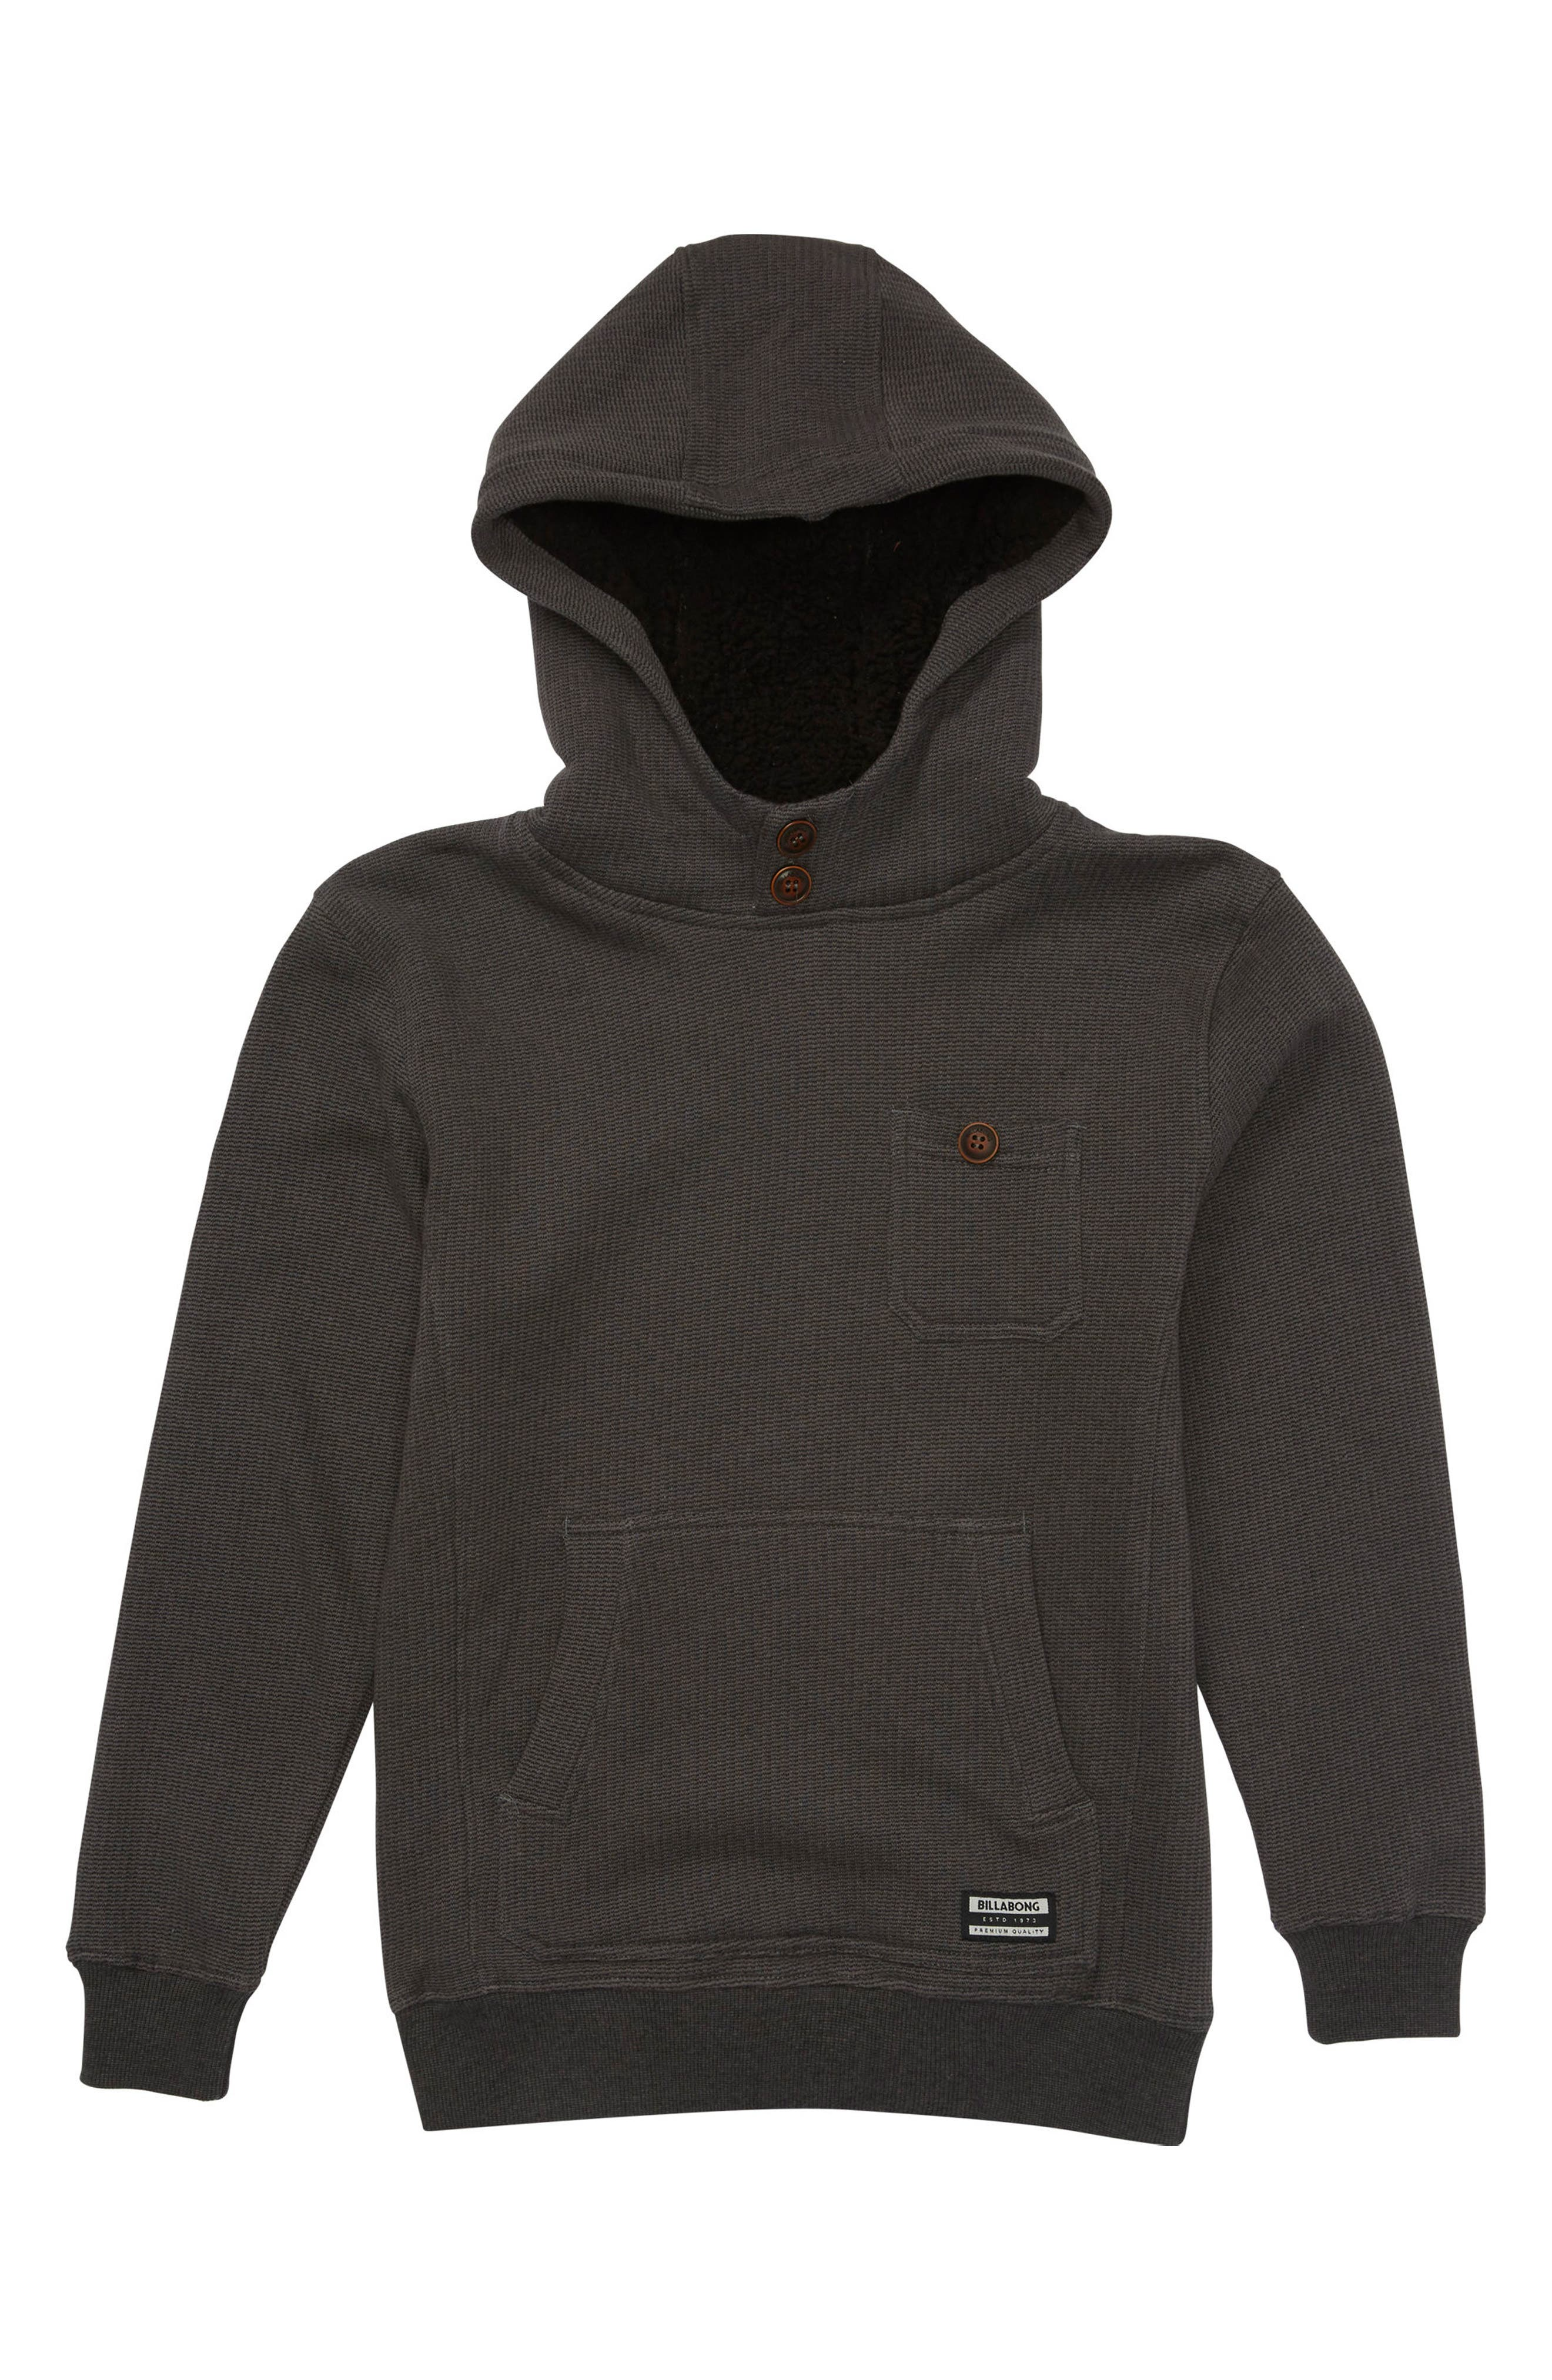 Hudson Woven Button Pullover Hoodie,                             Main thumbnail 1, color,                             001